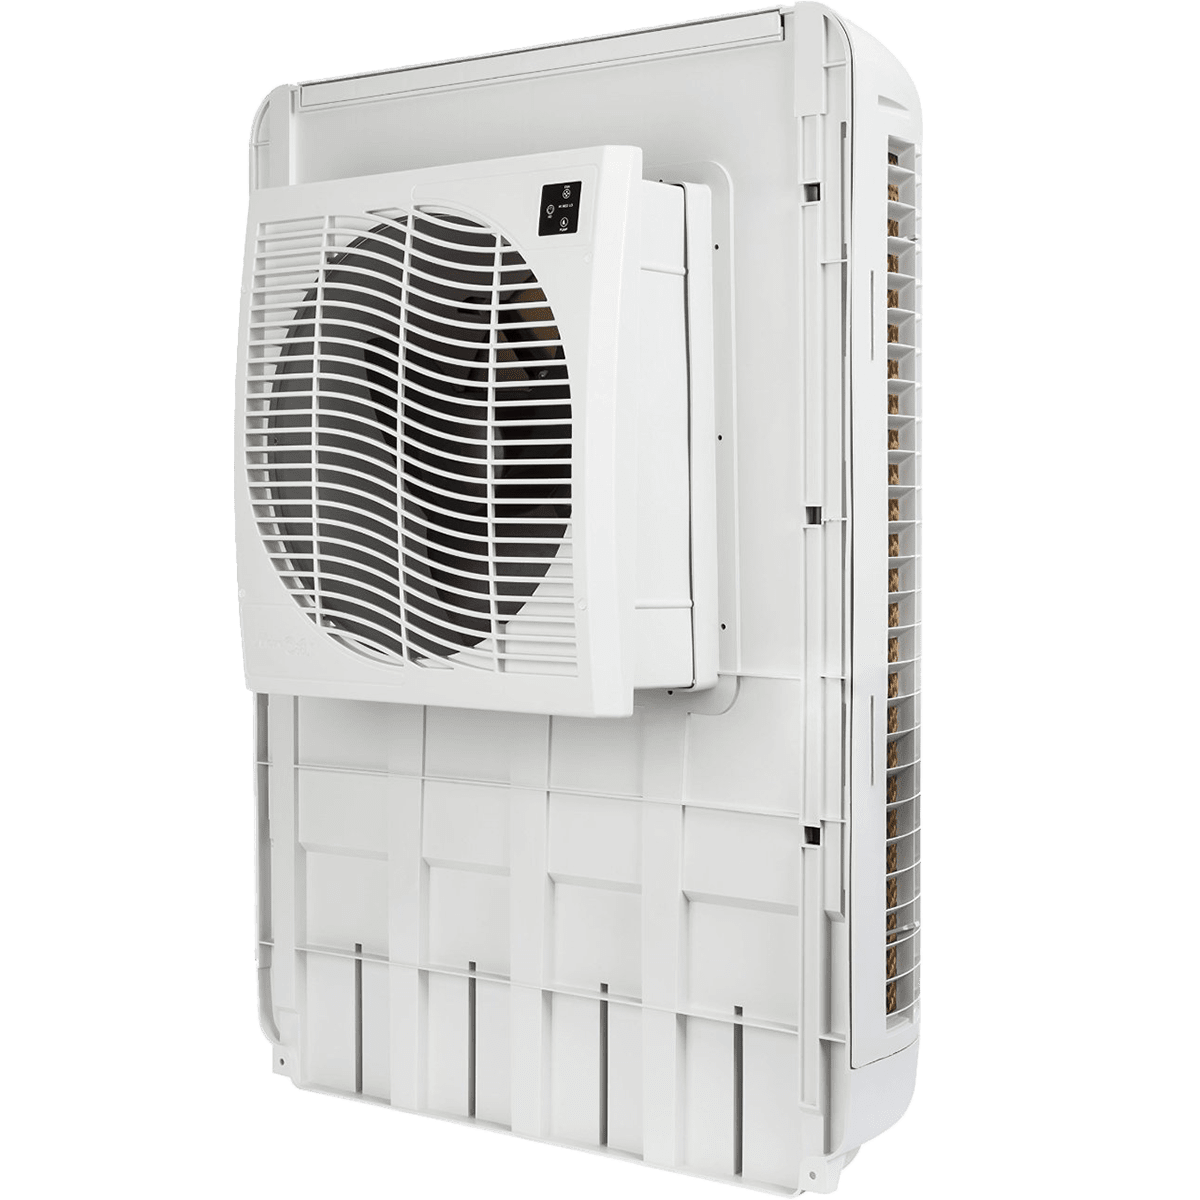 Window Evaporative Swamp Cooler : Mastercool mcp window swamp cooler sylvane